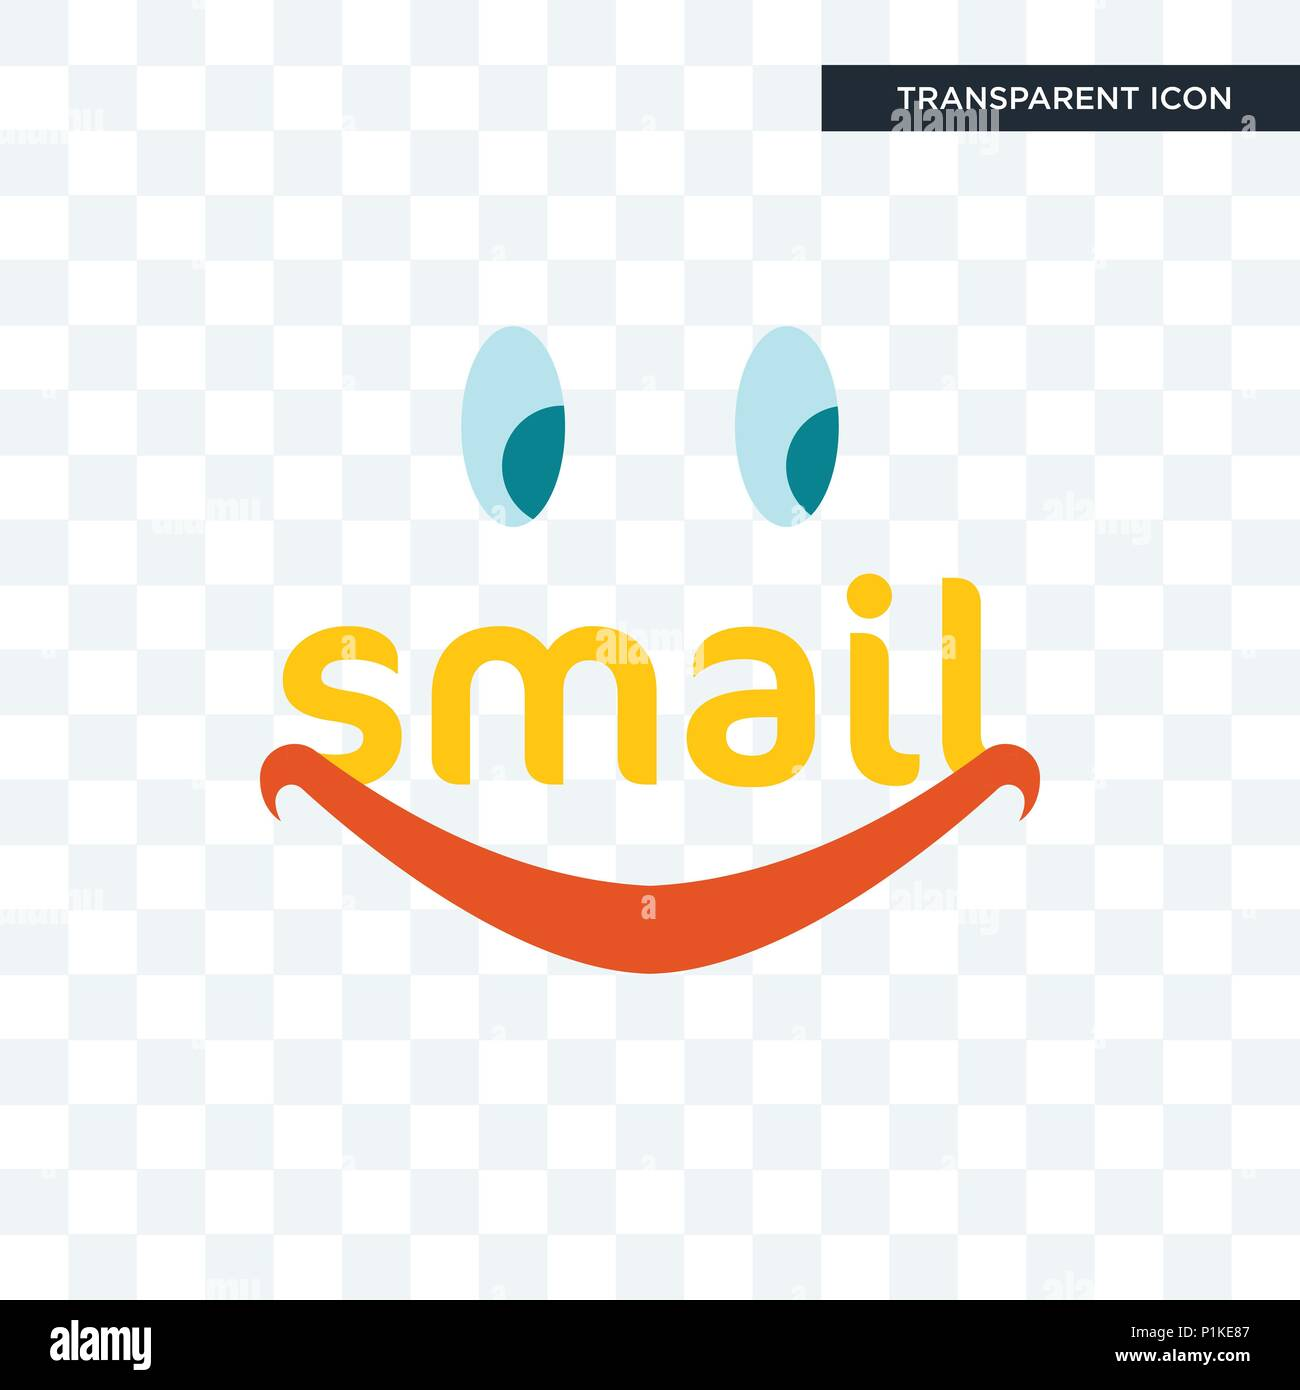 smail vector icon isolated on transparent background, smail logo concept